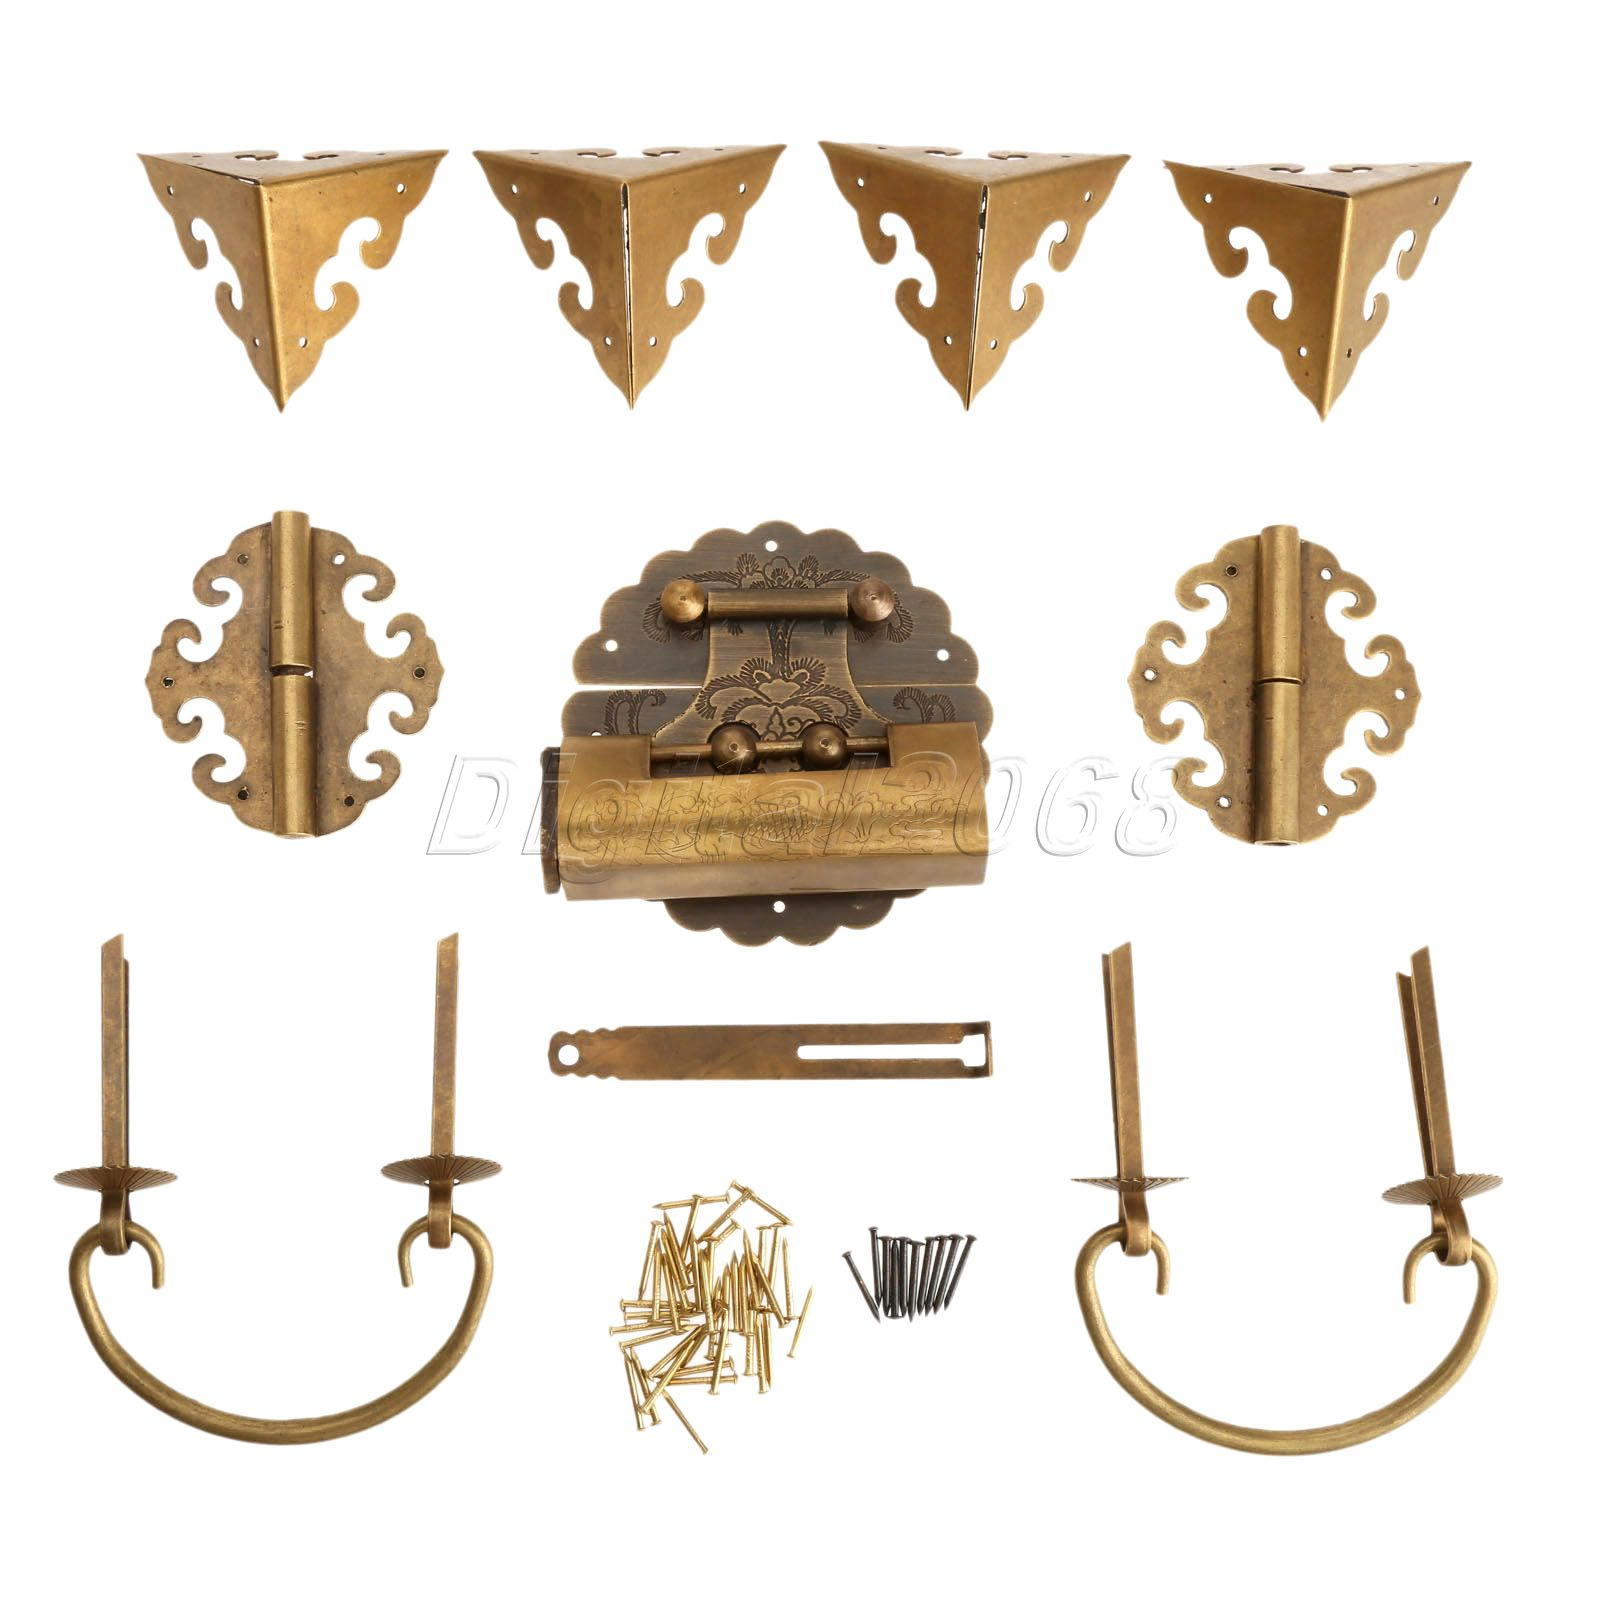 Hot Good Quality 9pcs/set Brass Chinese Furniture Hardware Chest Hinge Trunk Latch Box Handle Corner Plate with Nails 4pcs antique brass jewelry chest wood box decorative feet leg corner brackets protector for cabinet furniture hardware